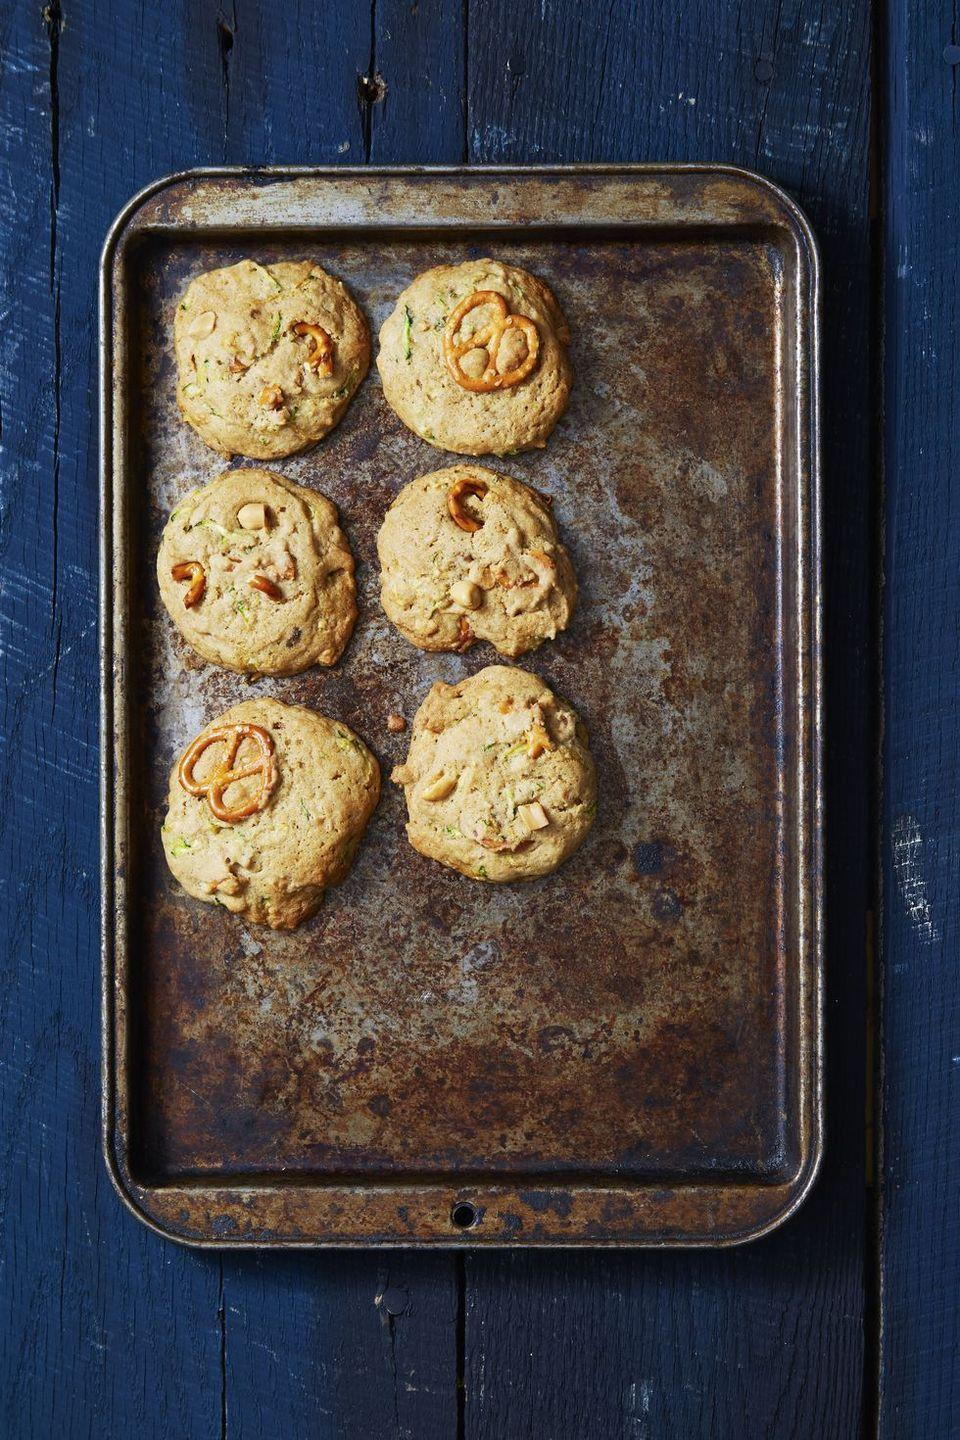 """<p>These easy cookies contain a full cup of grated zucchini. This totally counts as a serving of vegetables, IMHO.</p><p><em><a href=""""https://www.goodhousekeeping.com/food-recipes/dessert/a40394/sweet-salty-zucchini-bread-cookies-recipe/"""" rel=""""nofollow noopener"""" target=""""_blank"""" data-ylk=""""slk:Get the recipe for Sweet & Salty Zucchini Bread Cookies »"""" class=""""link rapid-noclick-resp"""">Get the recipe for Sweet & Salty Zucchini Bread Cookies »</a></em></p>"""